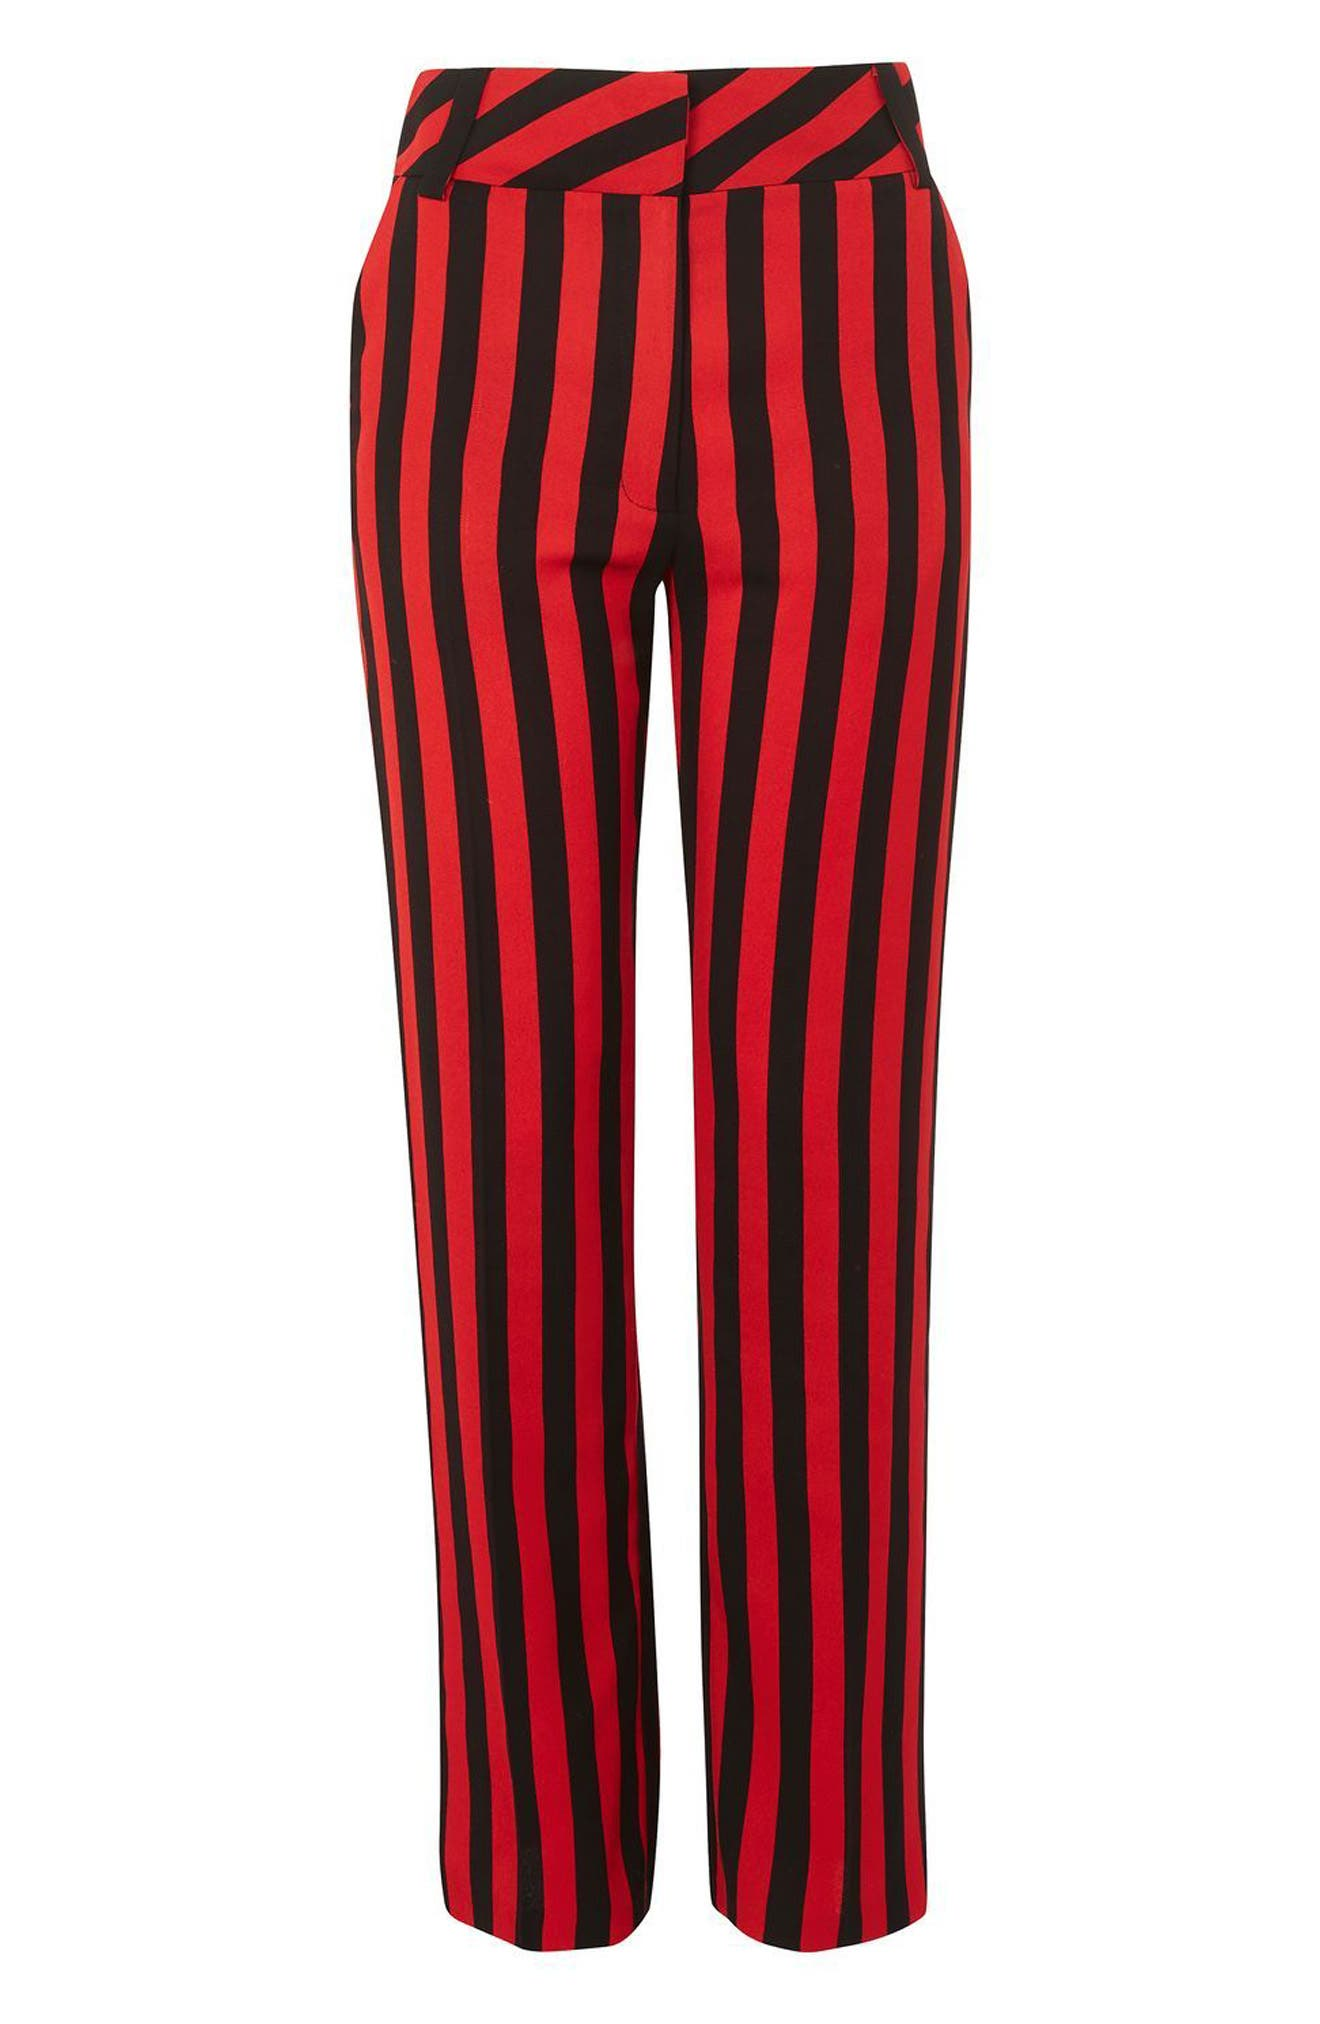 Humbug Stripe Trousers,                             Alternate thumbnail 5, color,                             Red Multi